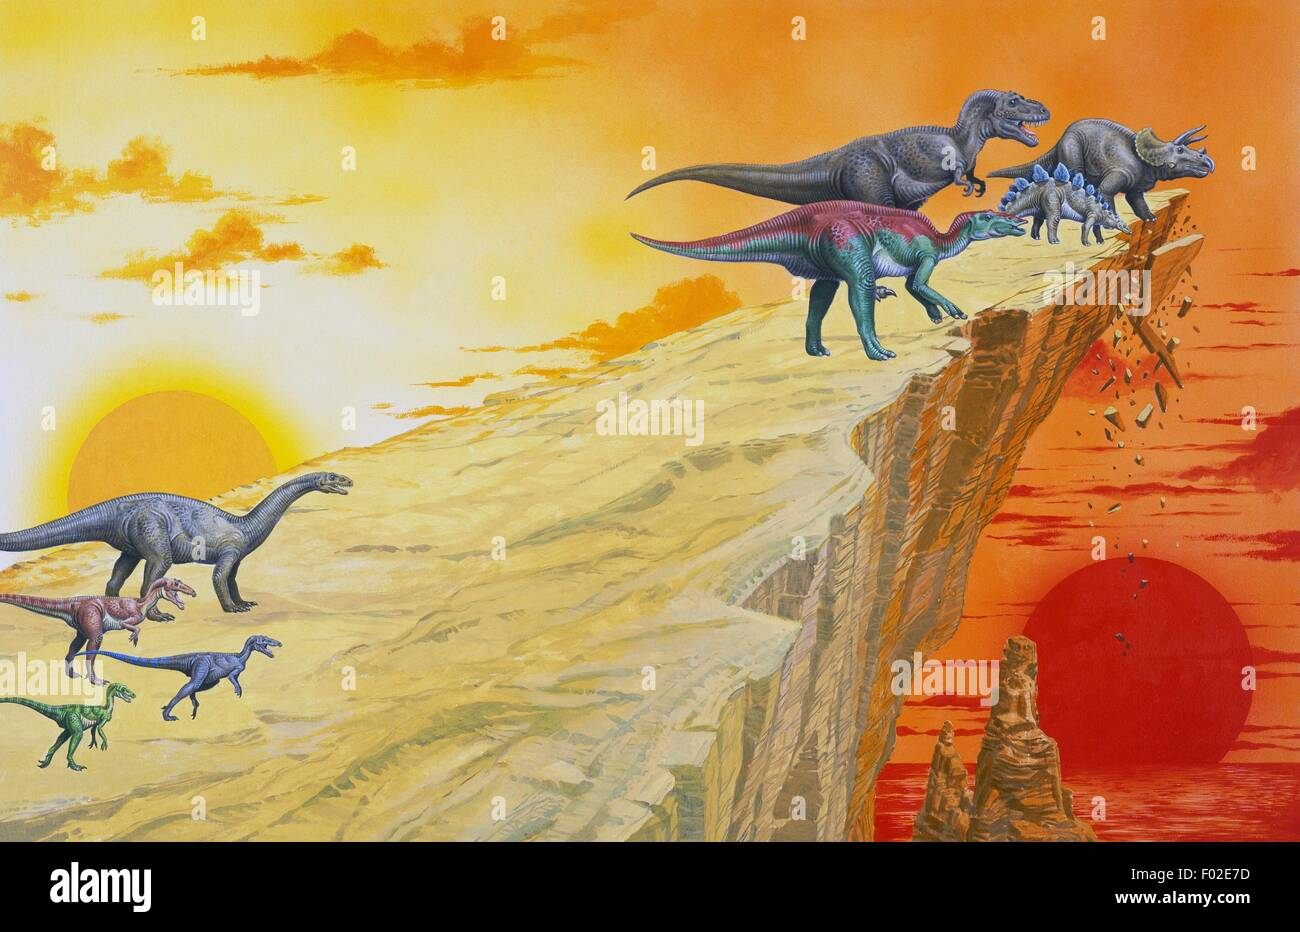 Dinosaurs on the brink of a precipice, Mesozoic. Illustration. - Stock Image